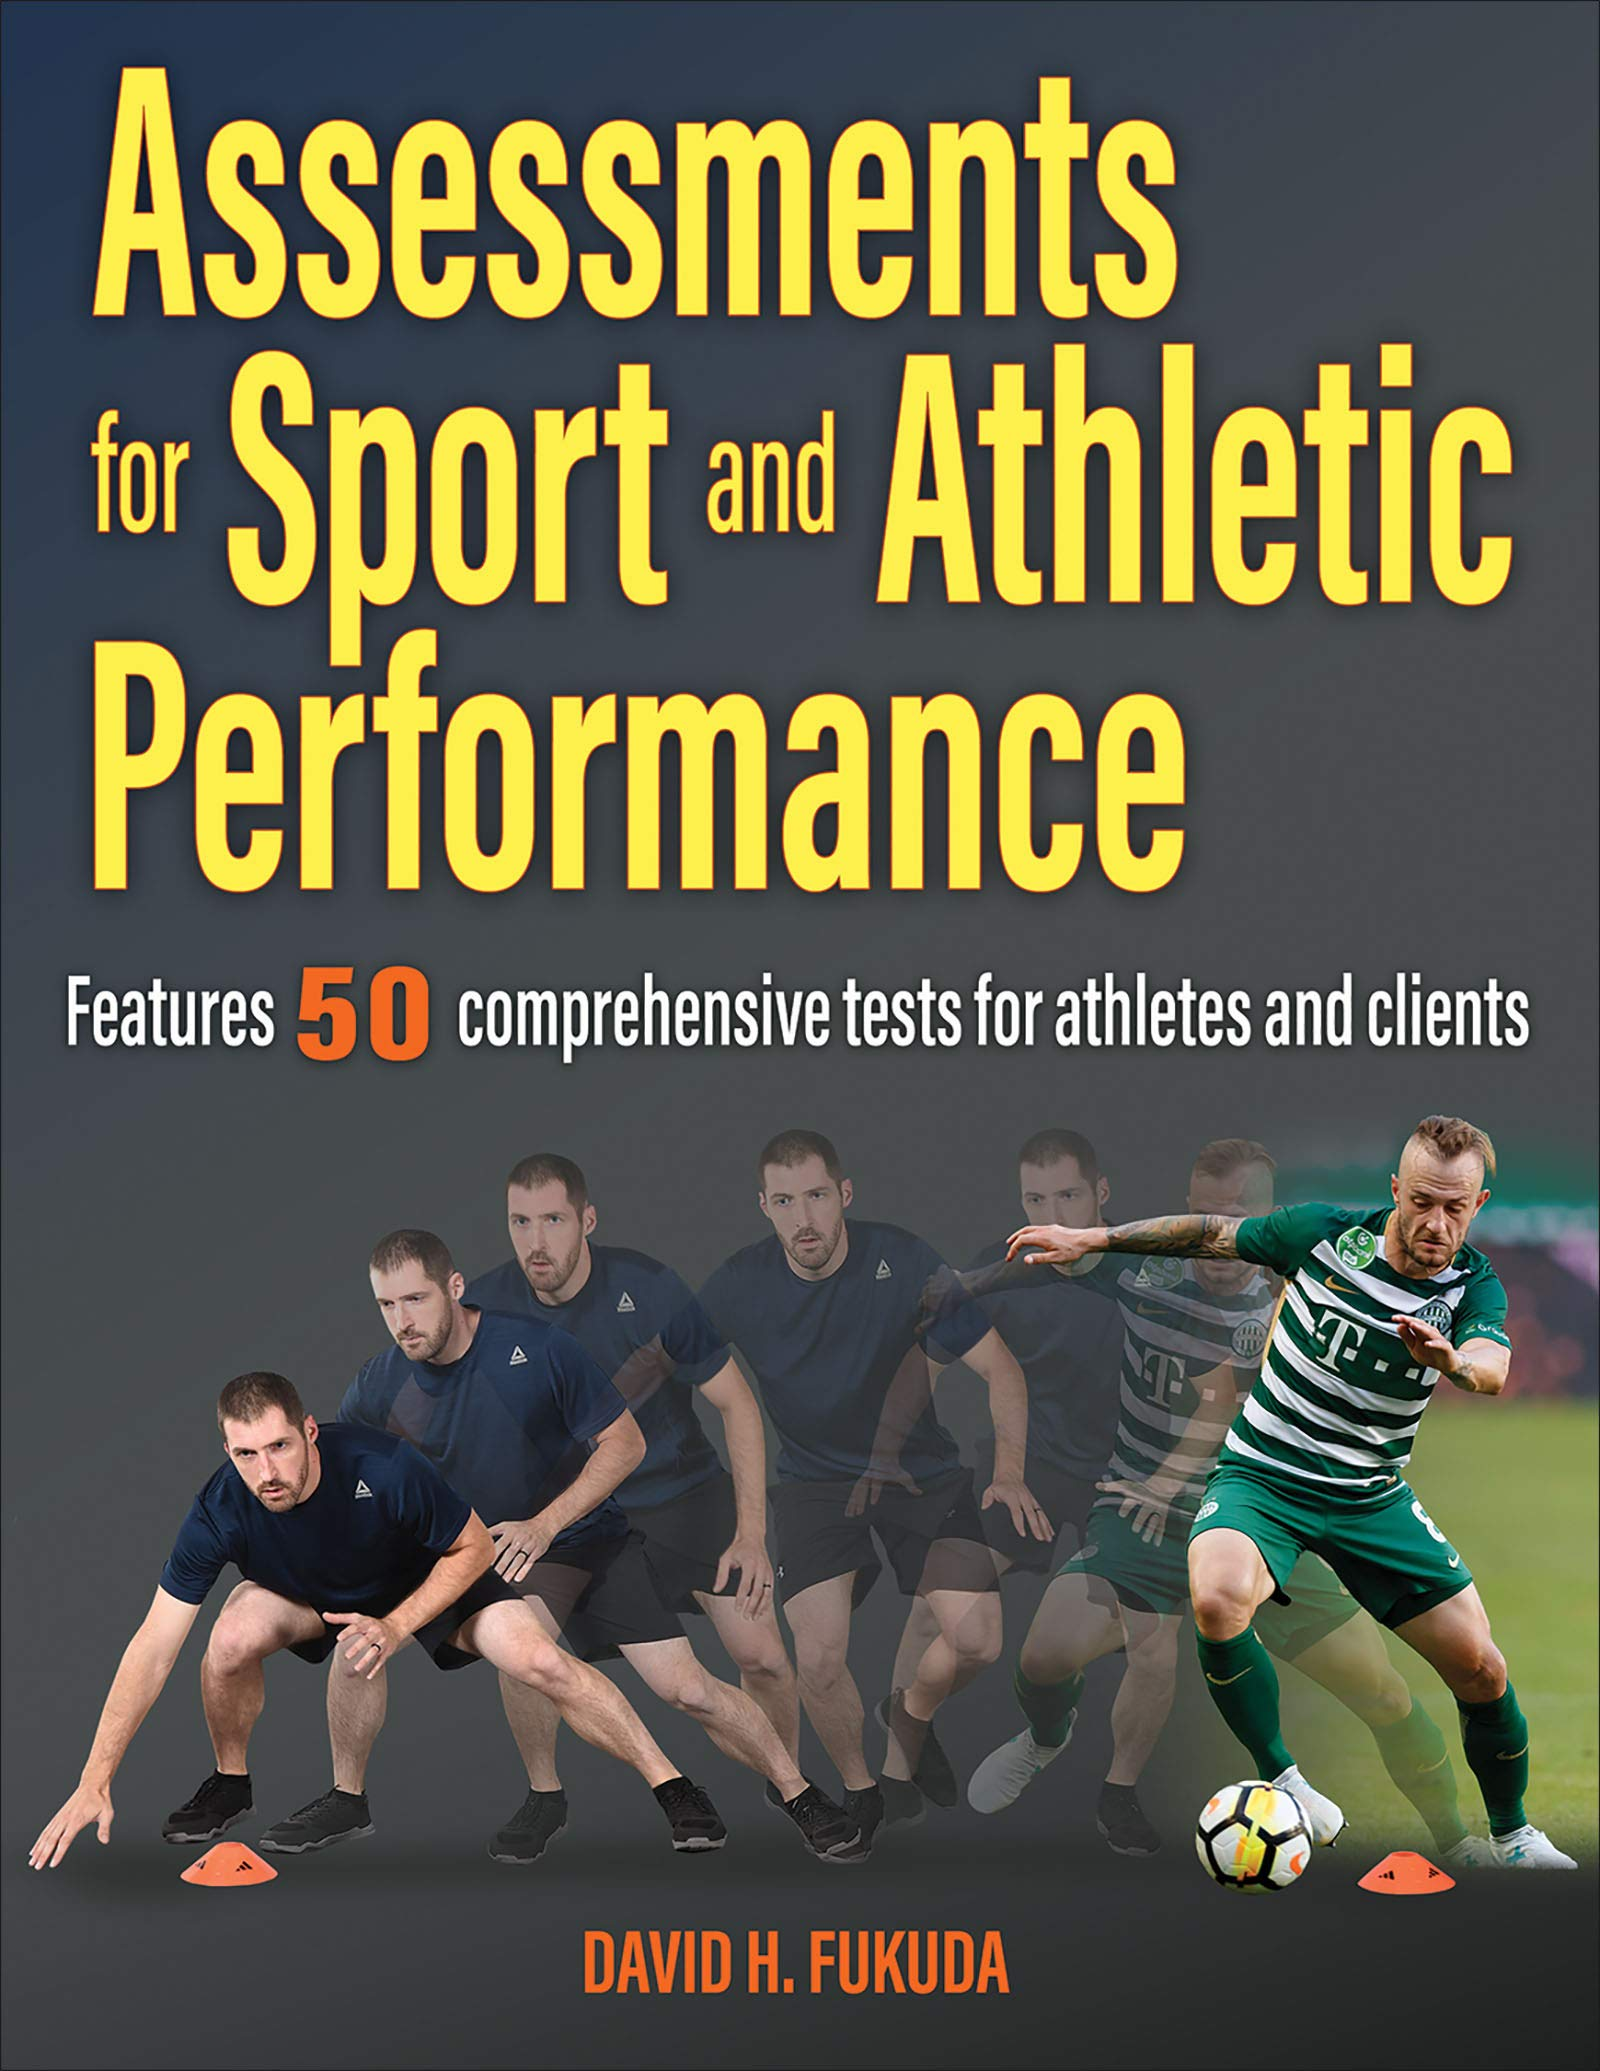 Image OfAssessments For Sport And Athletic Performance